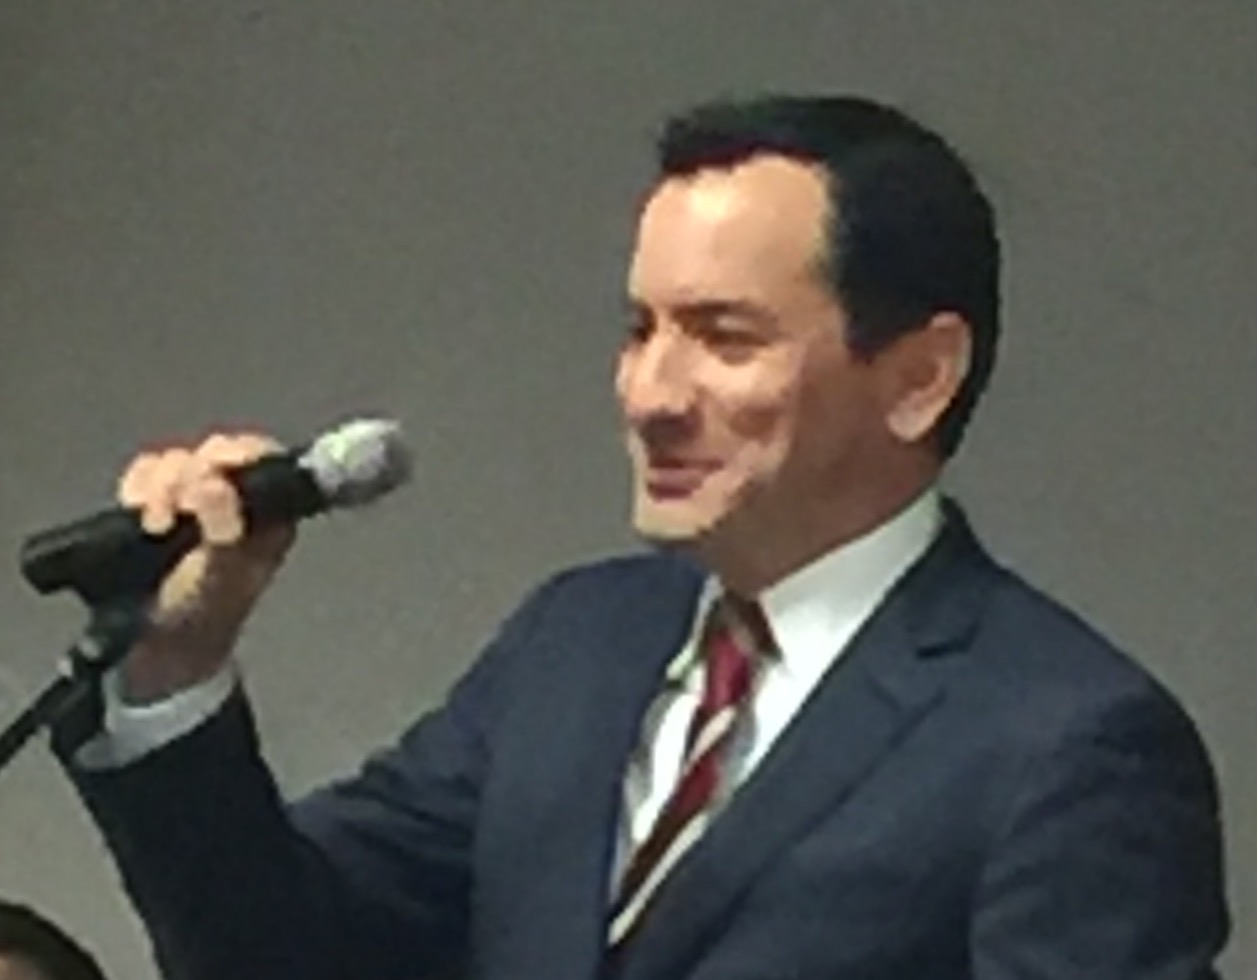 Anthony Rendon Speaker of the California State Assembly, Keynote speaker at the Summit of Possibilities